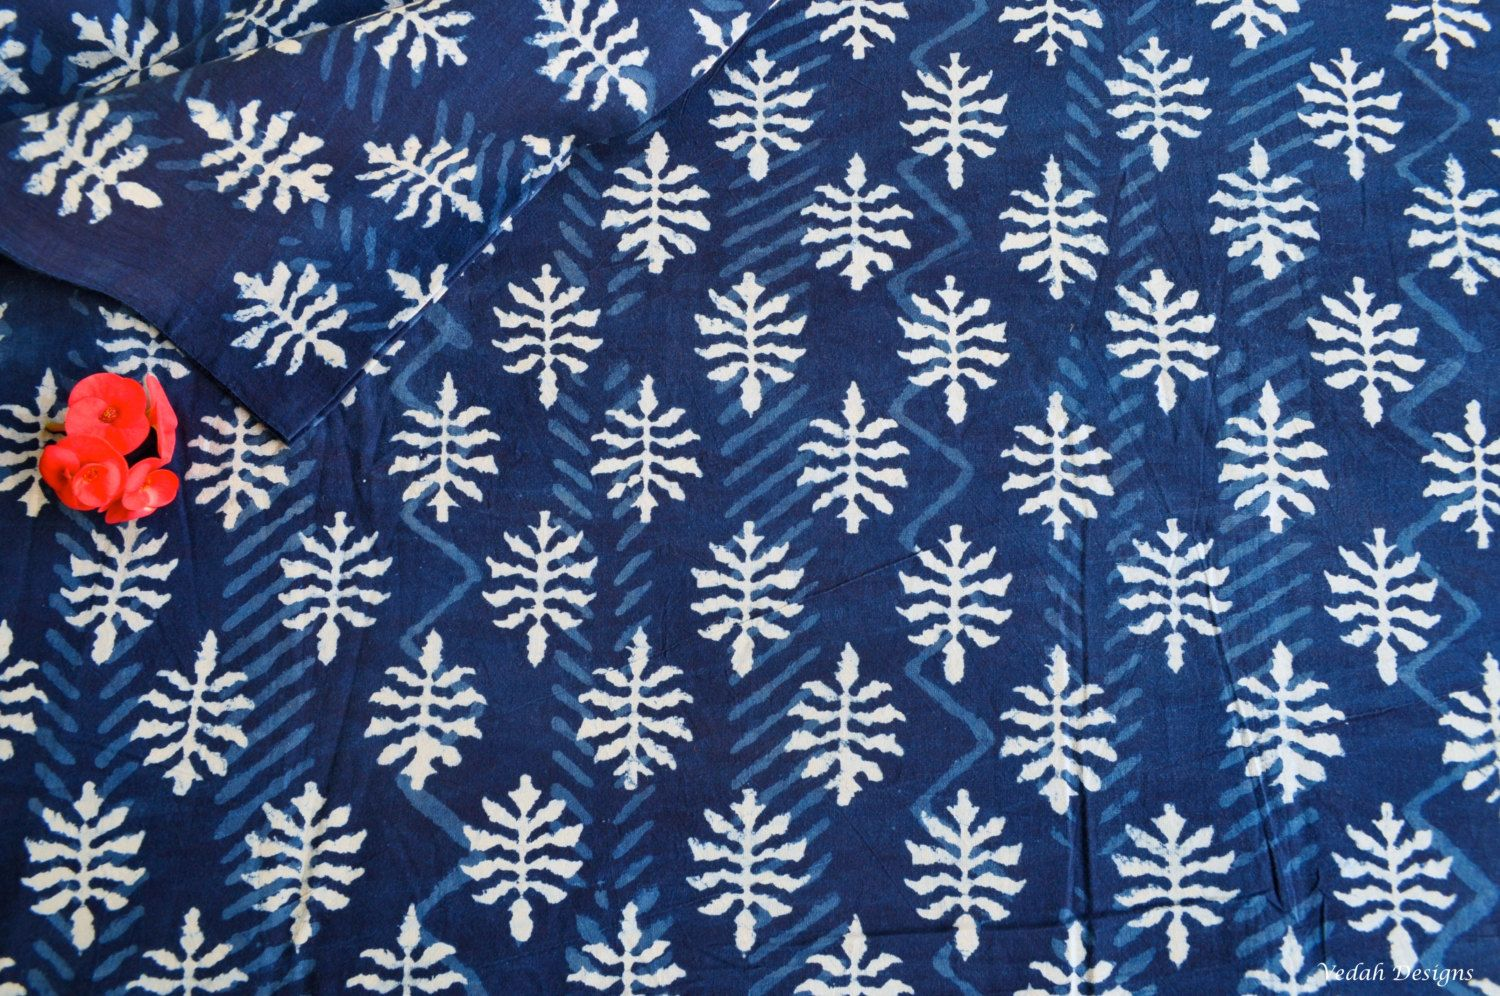 Top quality Natural dyed Indigo cotton supply wholesale leaf design block print fabric sold by yard by VedahDesigns on Etsy